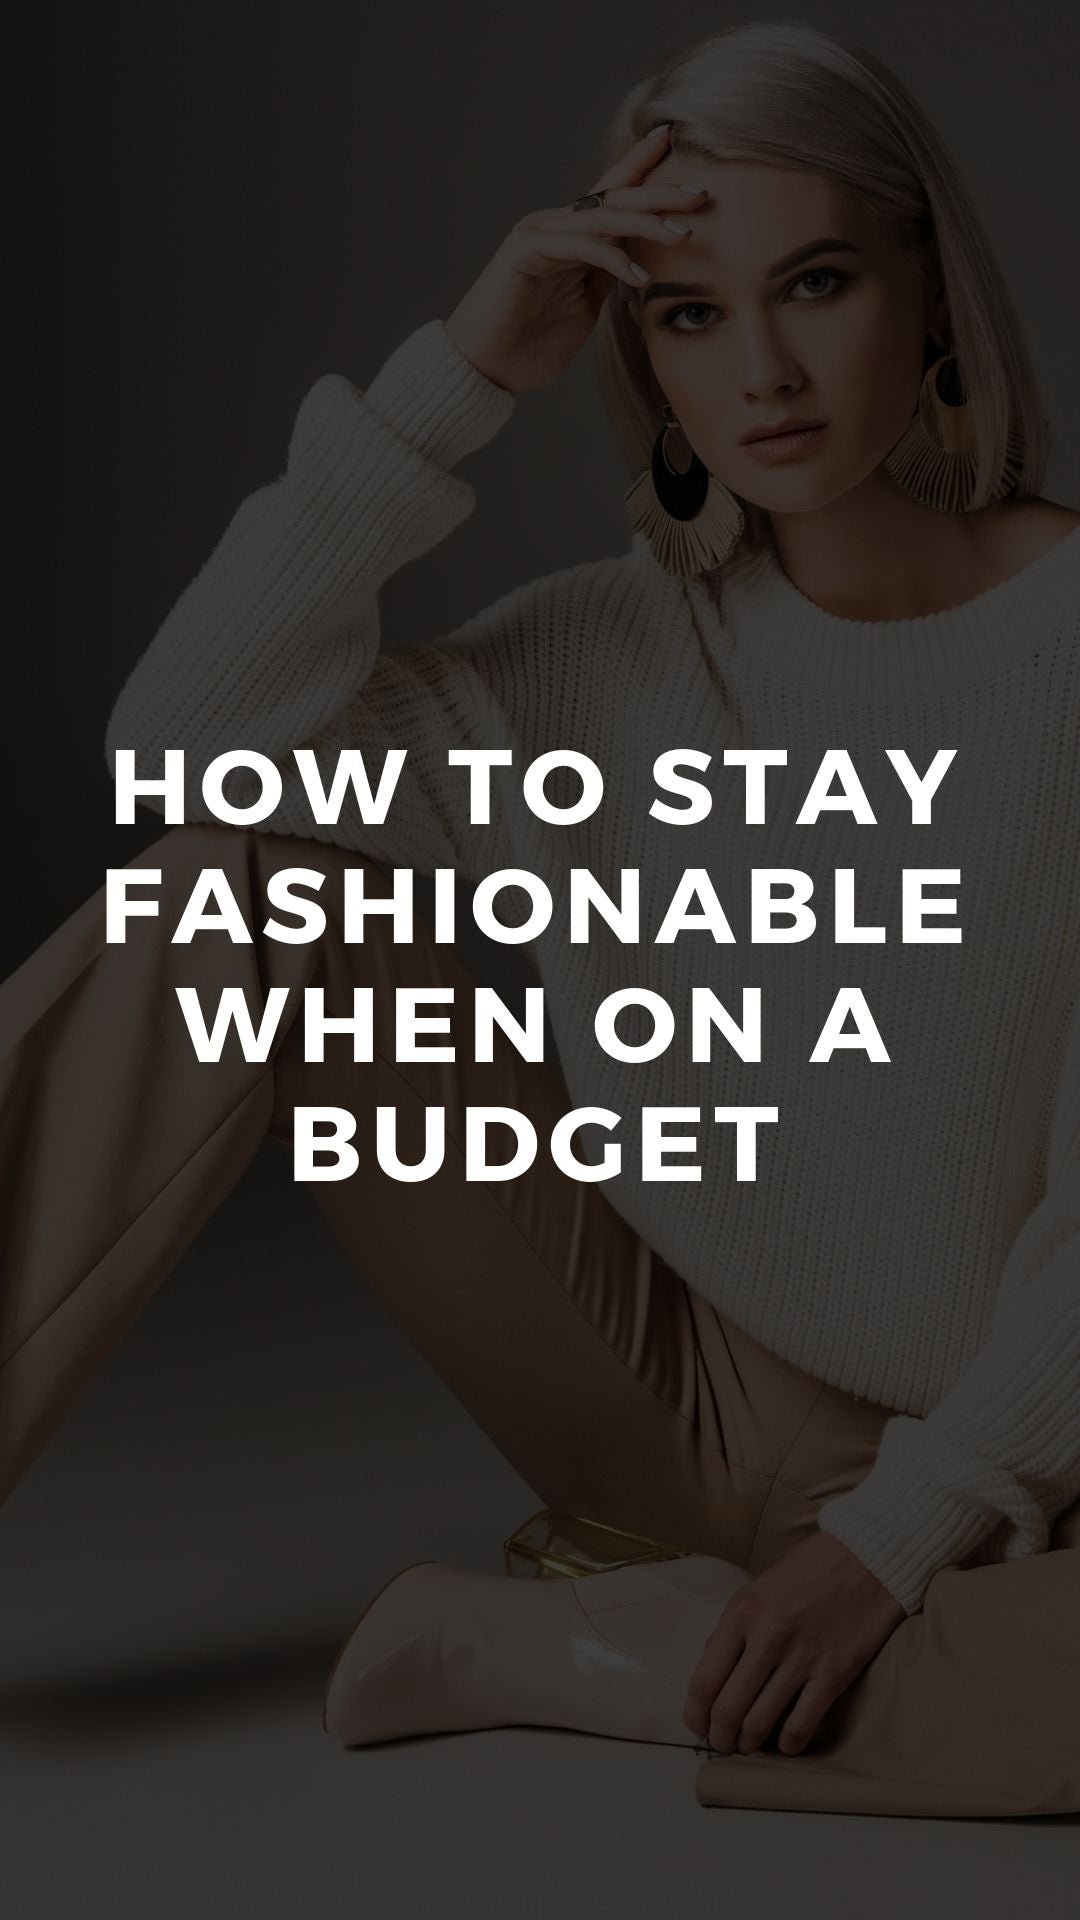 How to Stay Fashionable When on a Budget